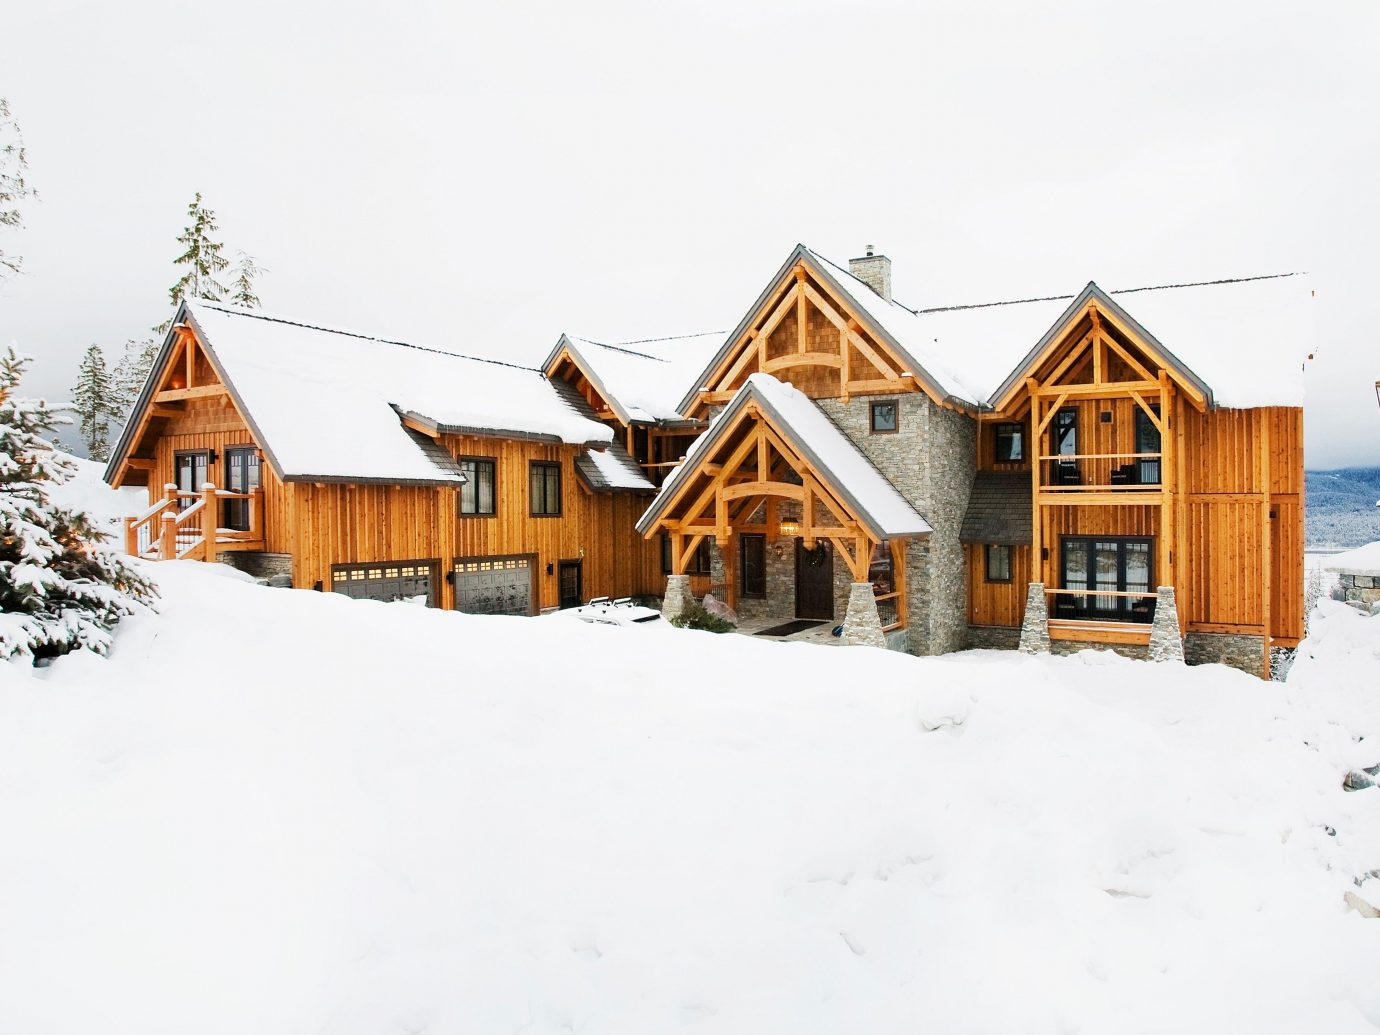 Hotels Luxury Travel Mountains + Skiing Trip Ideas snow outdoor sky Winter weather house building Town season geological phenomenon home residential area neighbourhood blizzard Village sugar house farm building barn